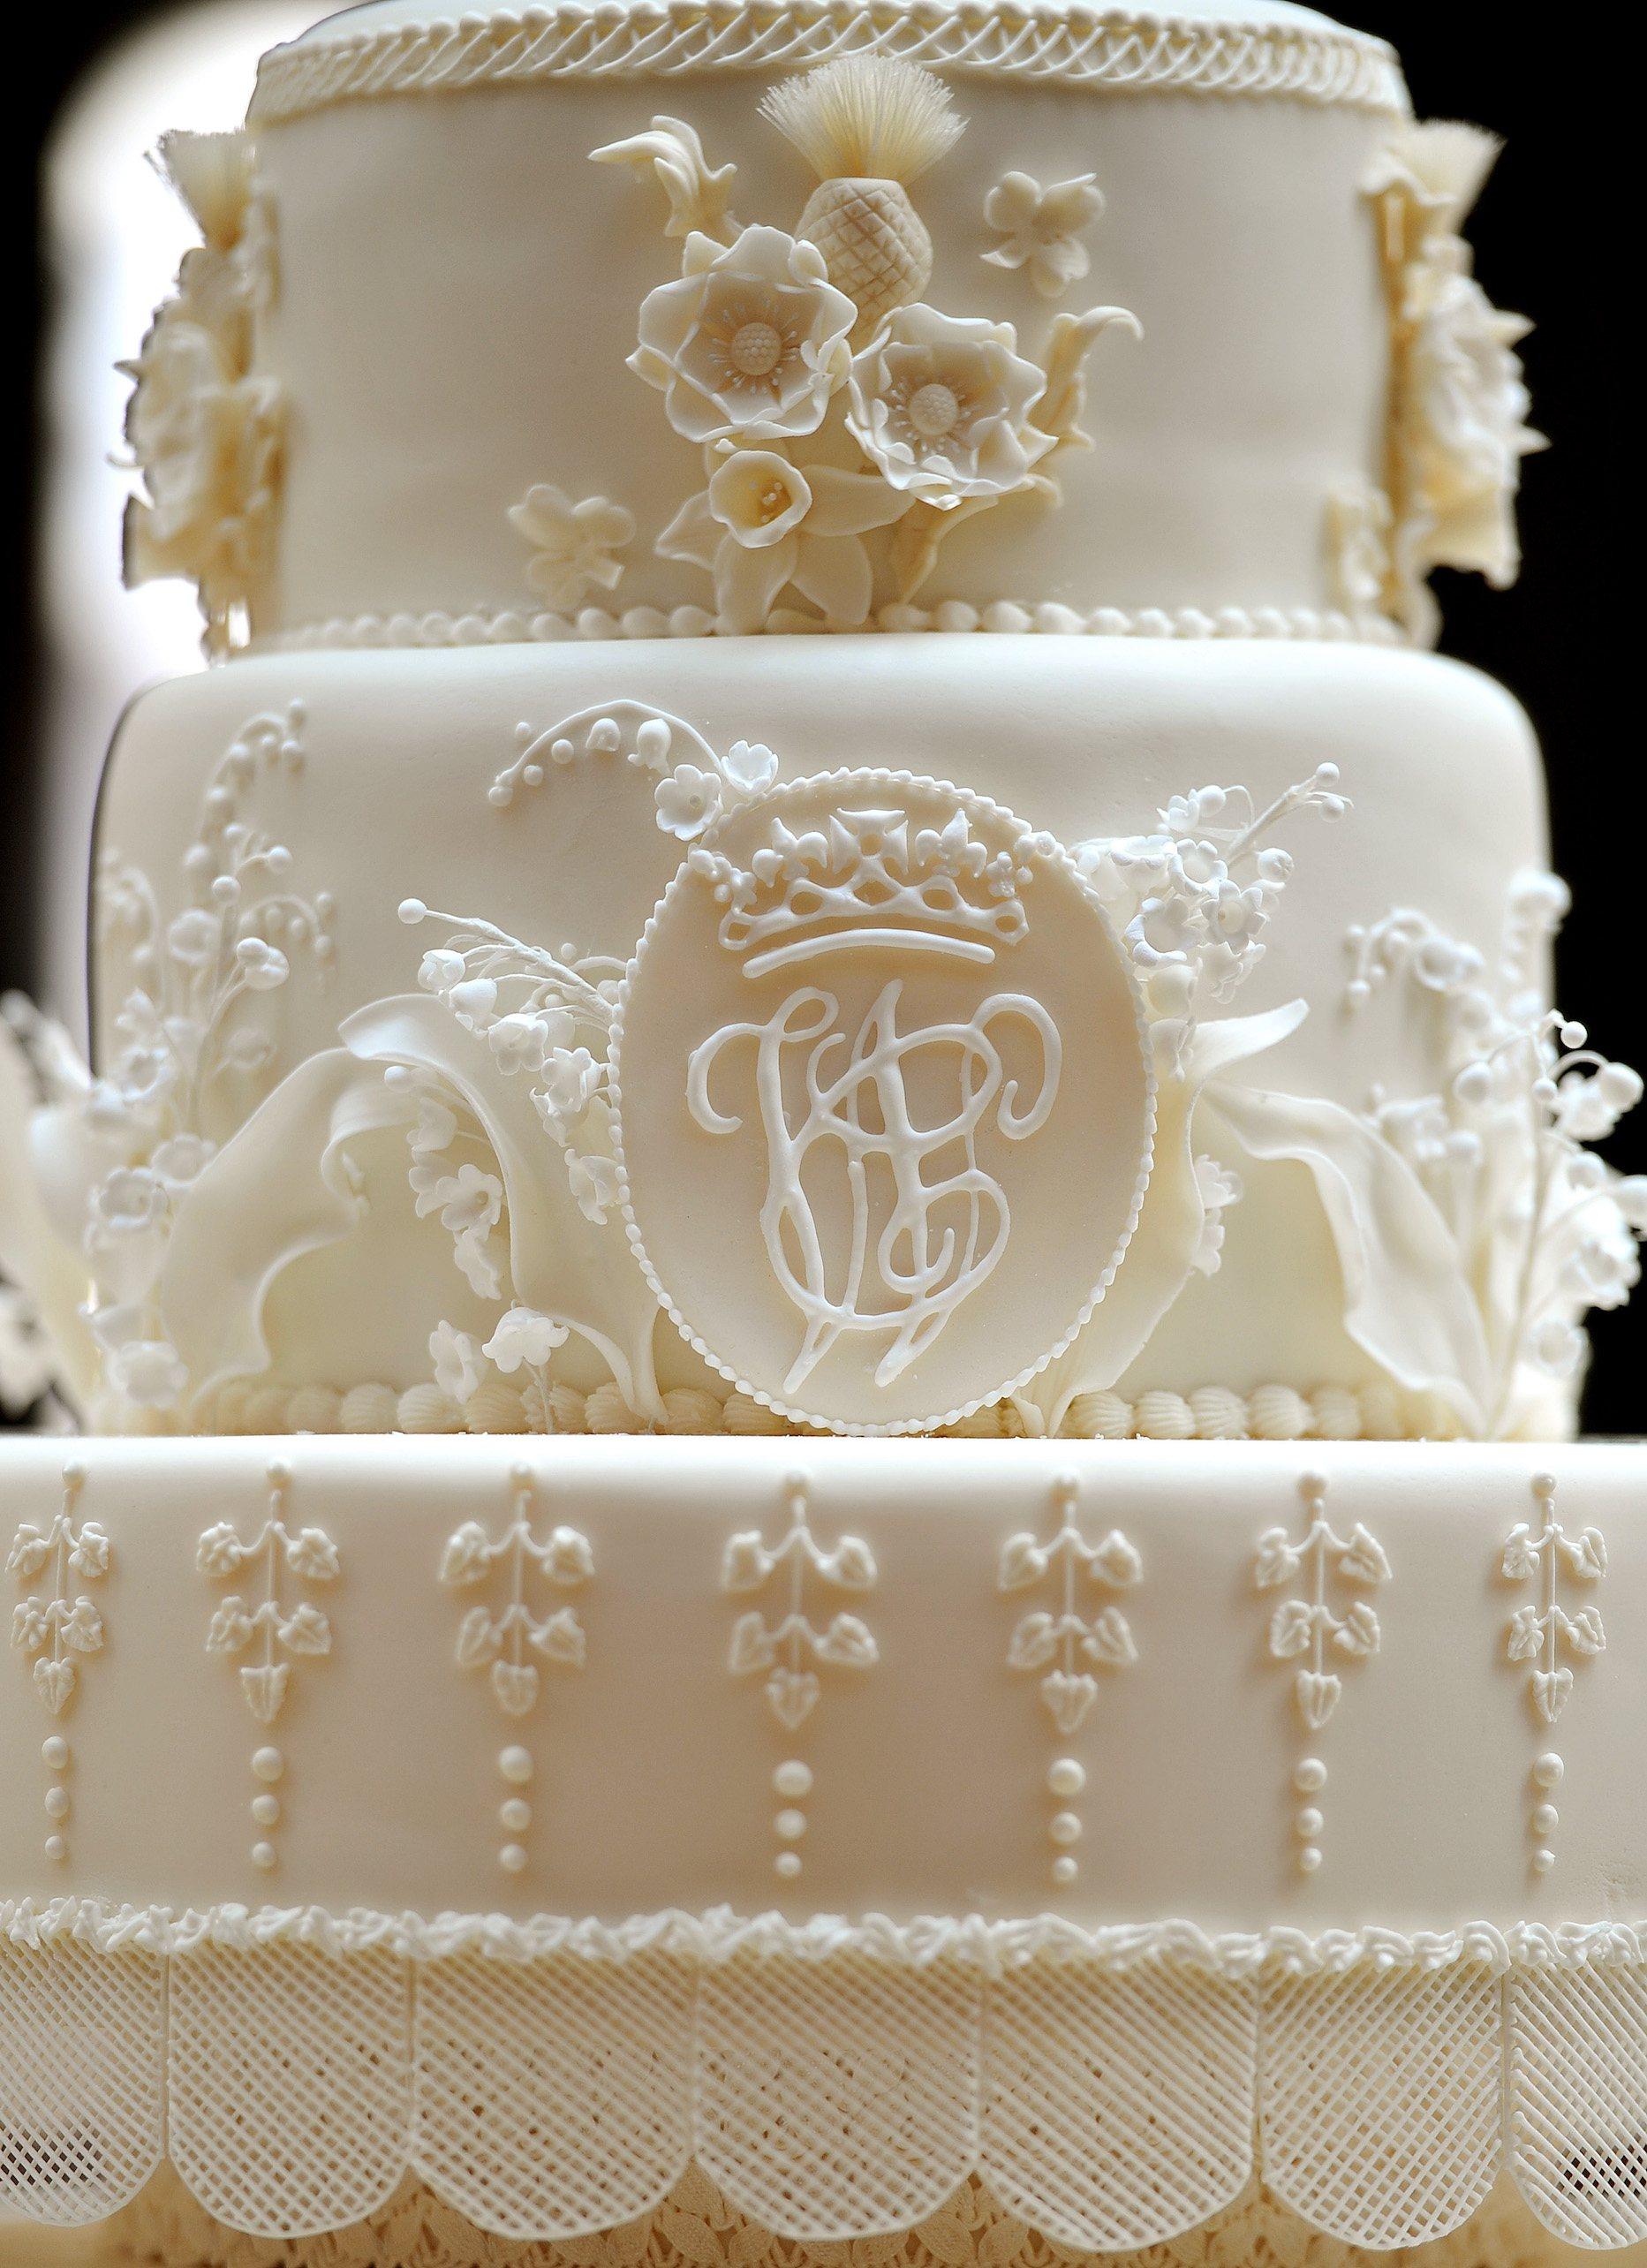 Close up of Kate Middleton and Prince William's wedding cake